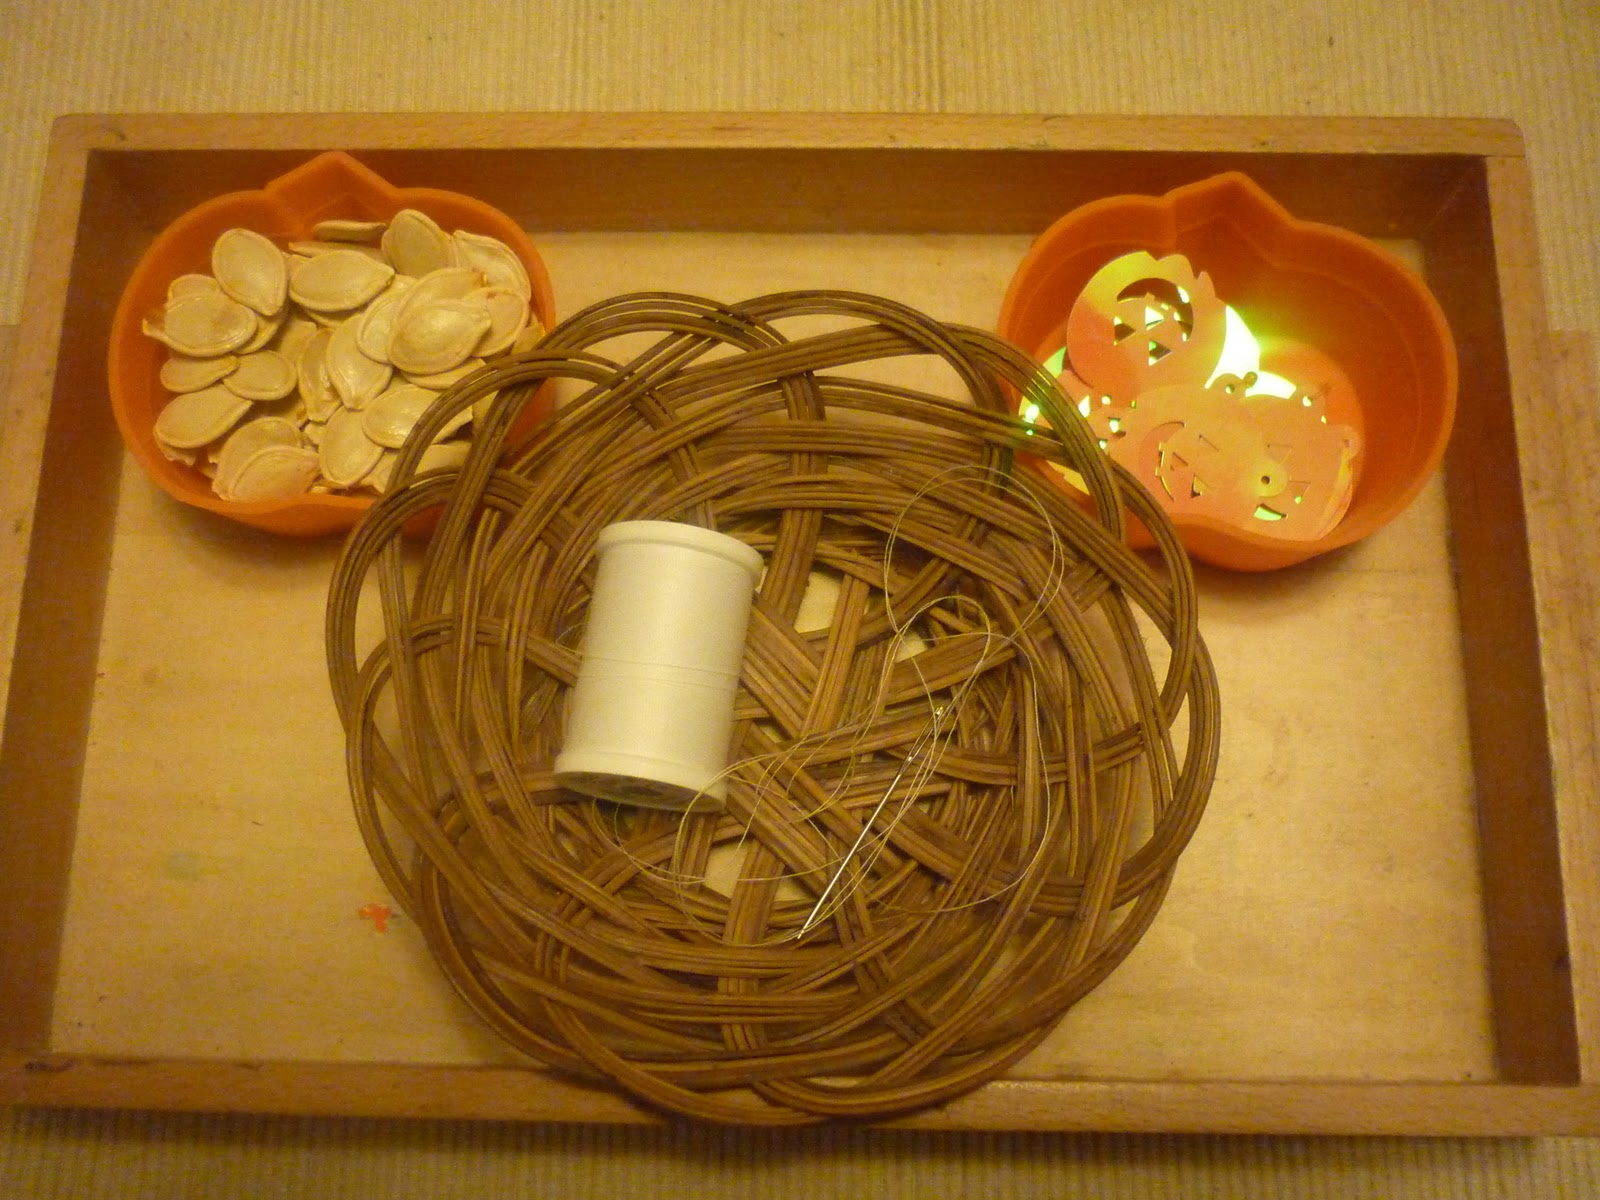 Pumpkin Seed Necklace Activity (Photo from The Work Plan)